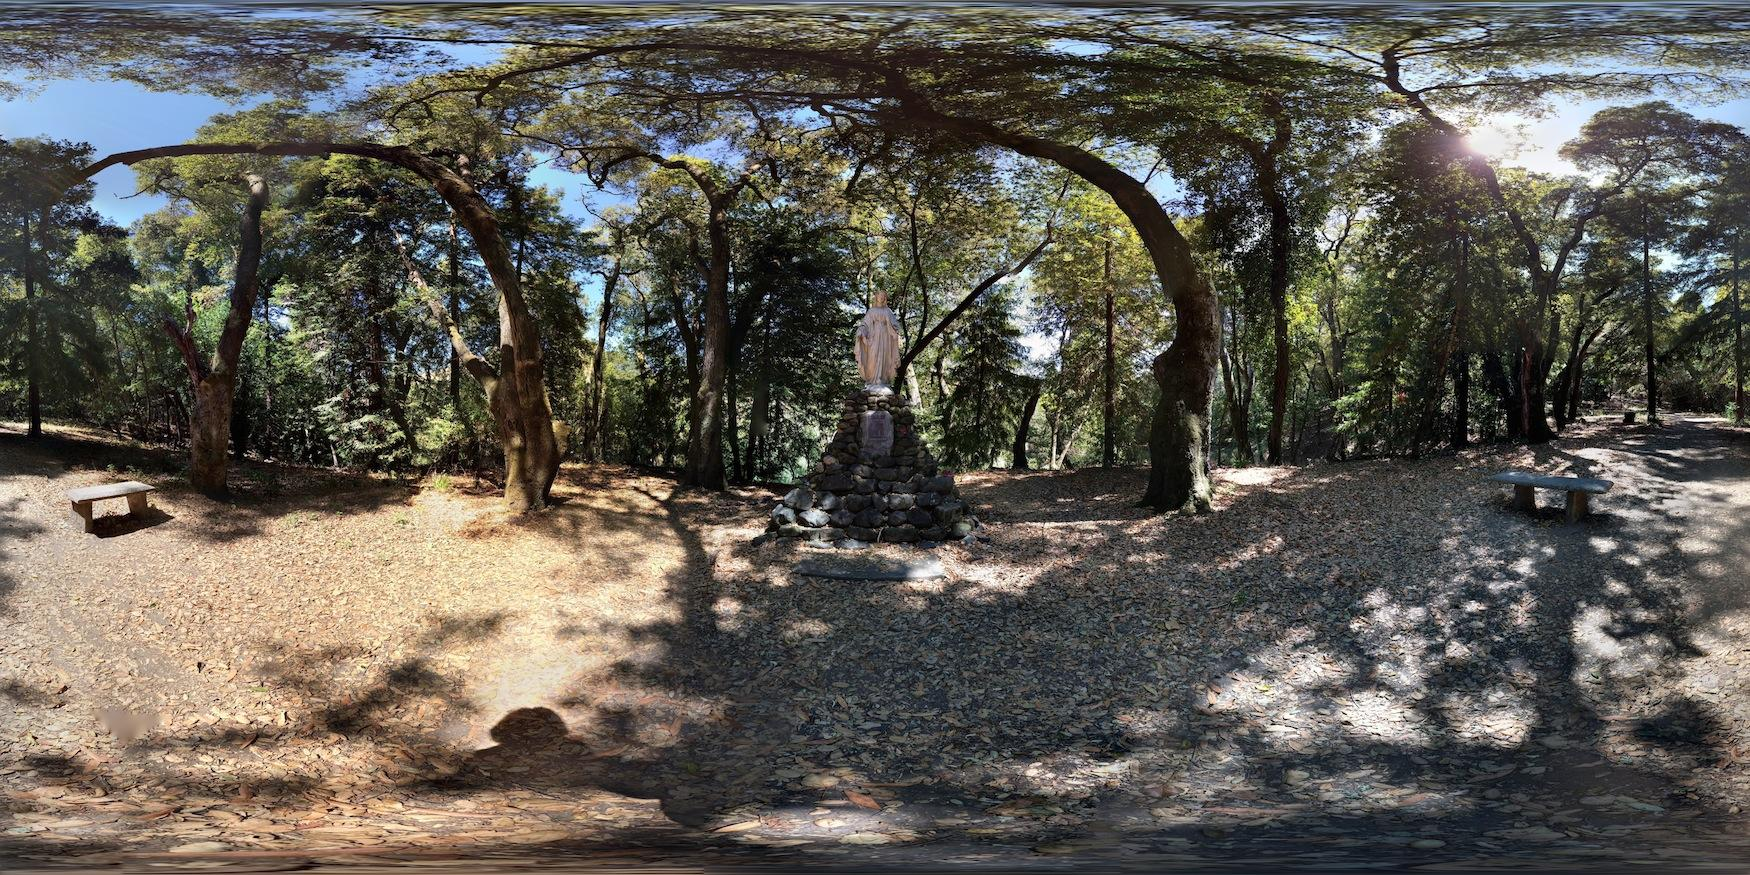 360-degree view of statue at Redwood Grove.